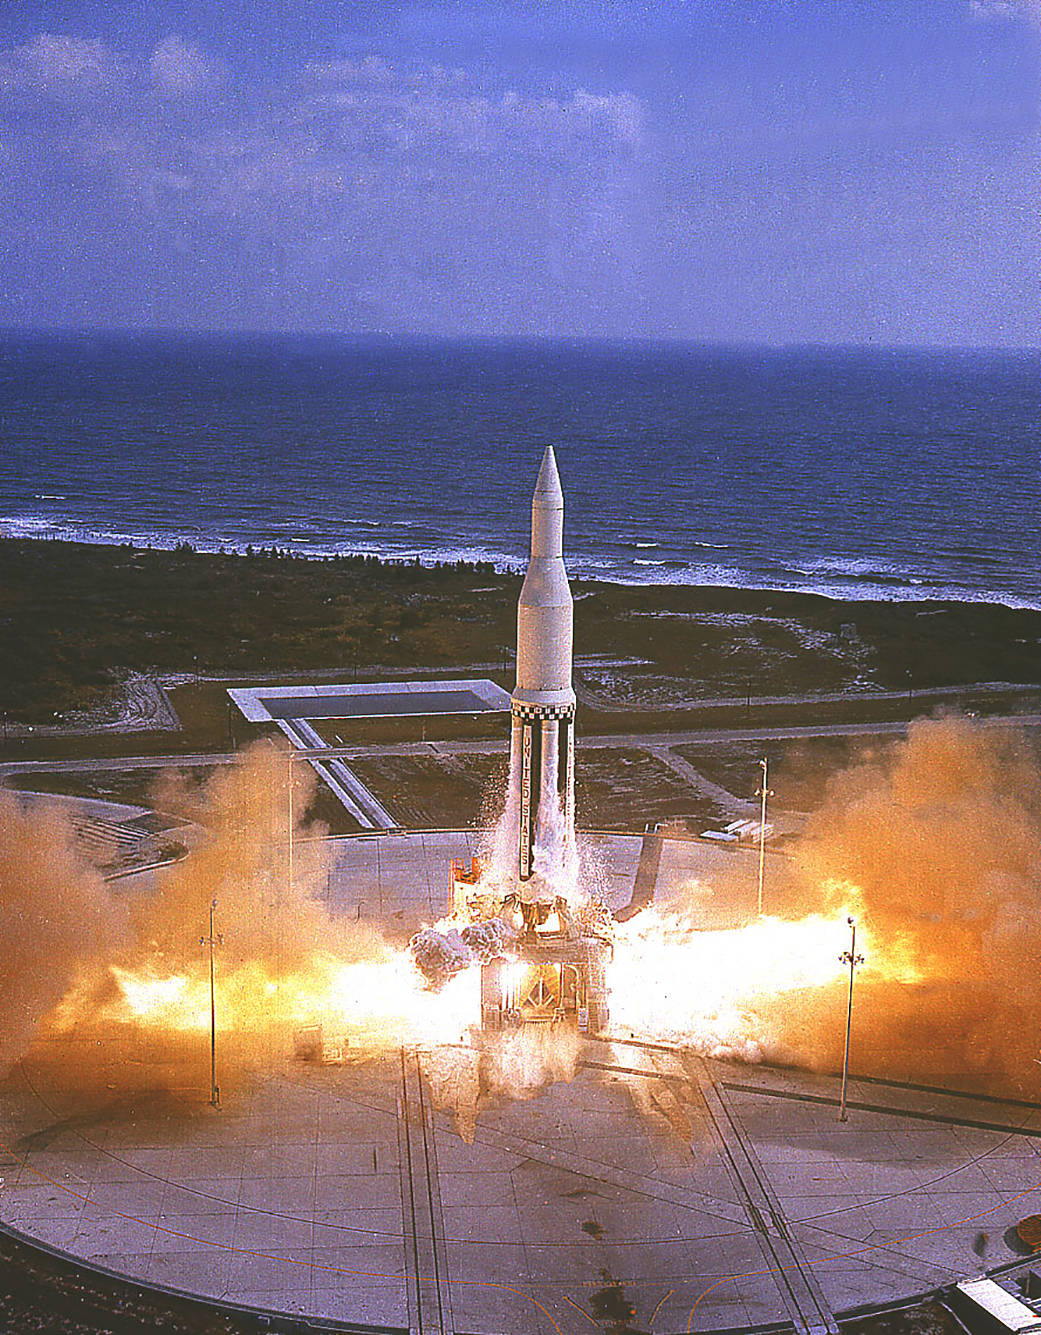 This week in 1961, marked a high point in the 3-year-old Saturn development program, as the first Saturn I vehicle, SA-1, flew.